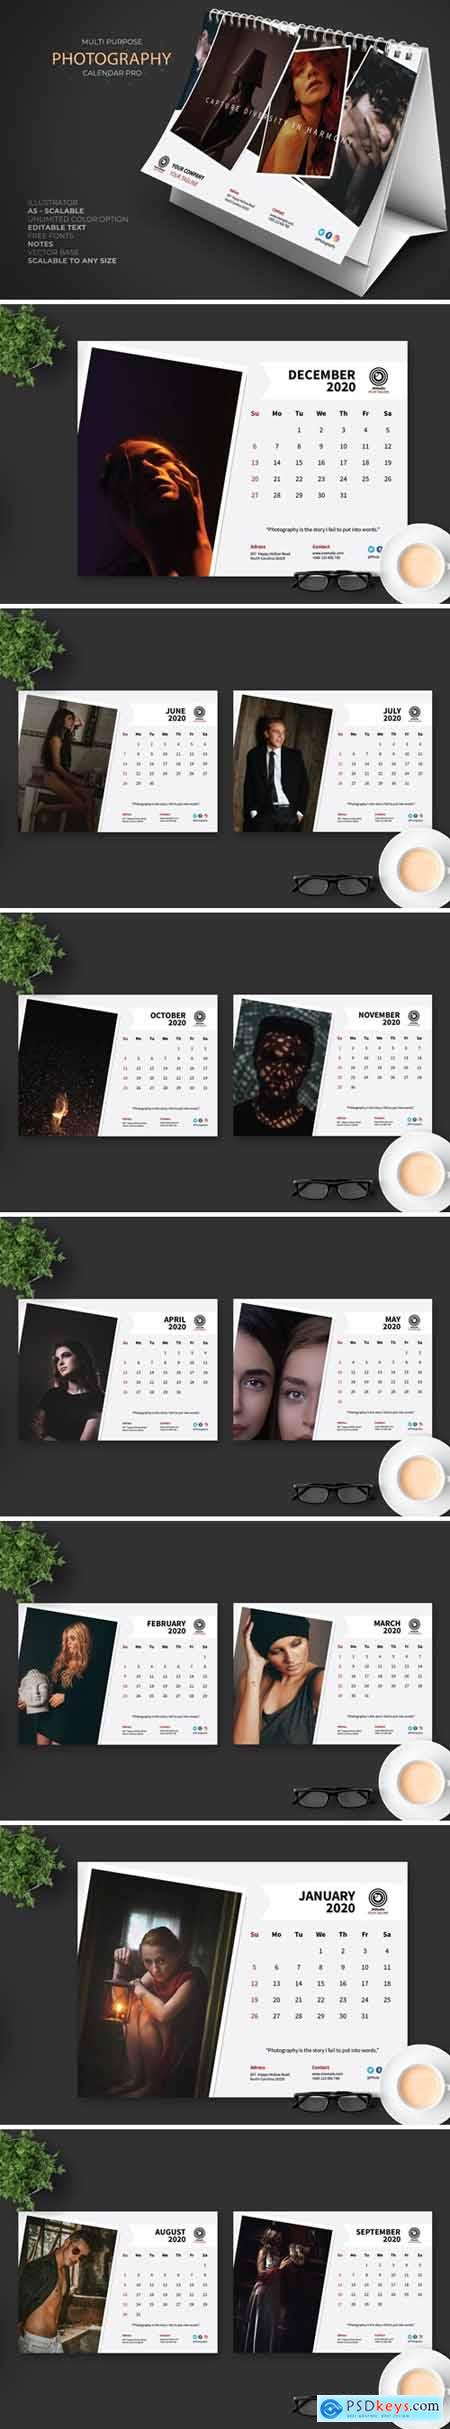 2020 Creative Photography Calendar Pro